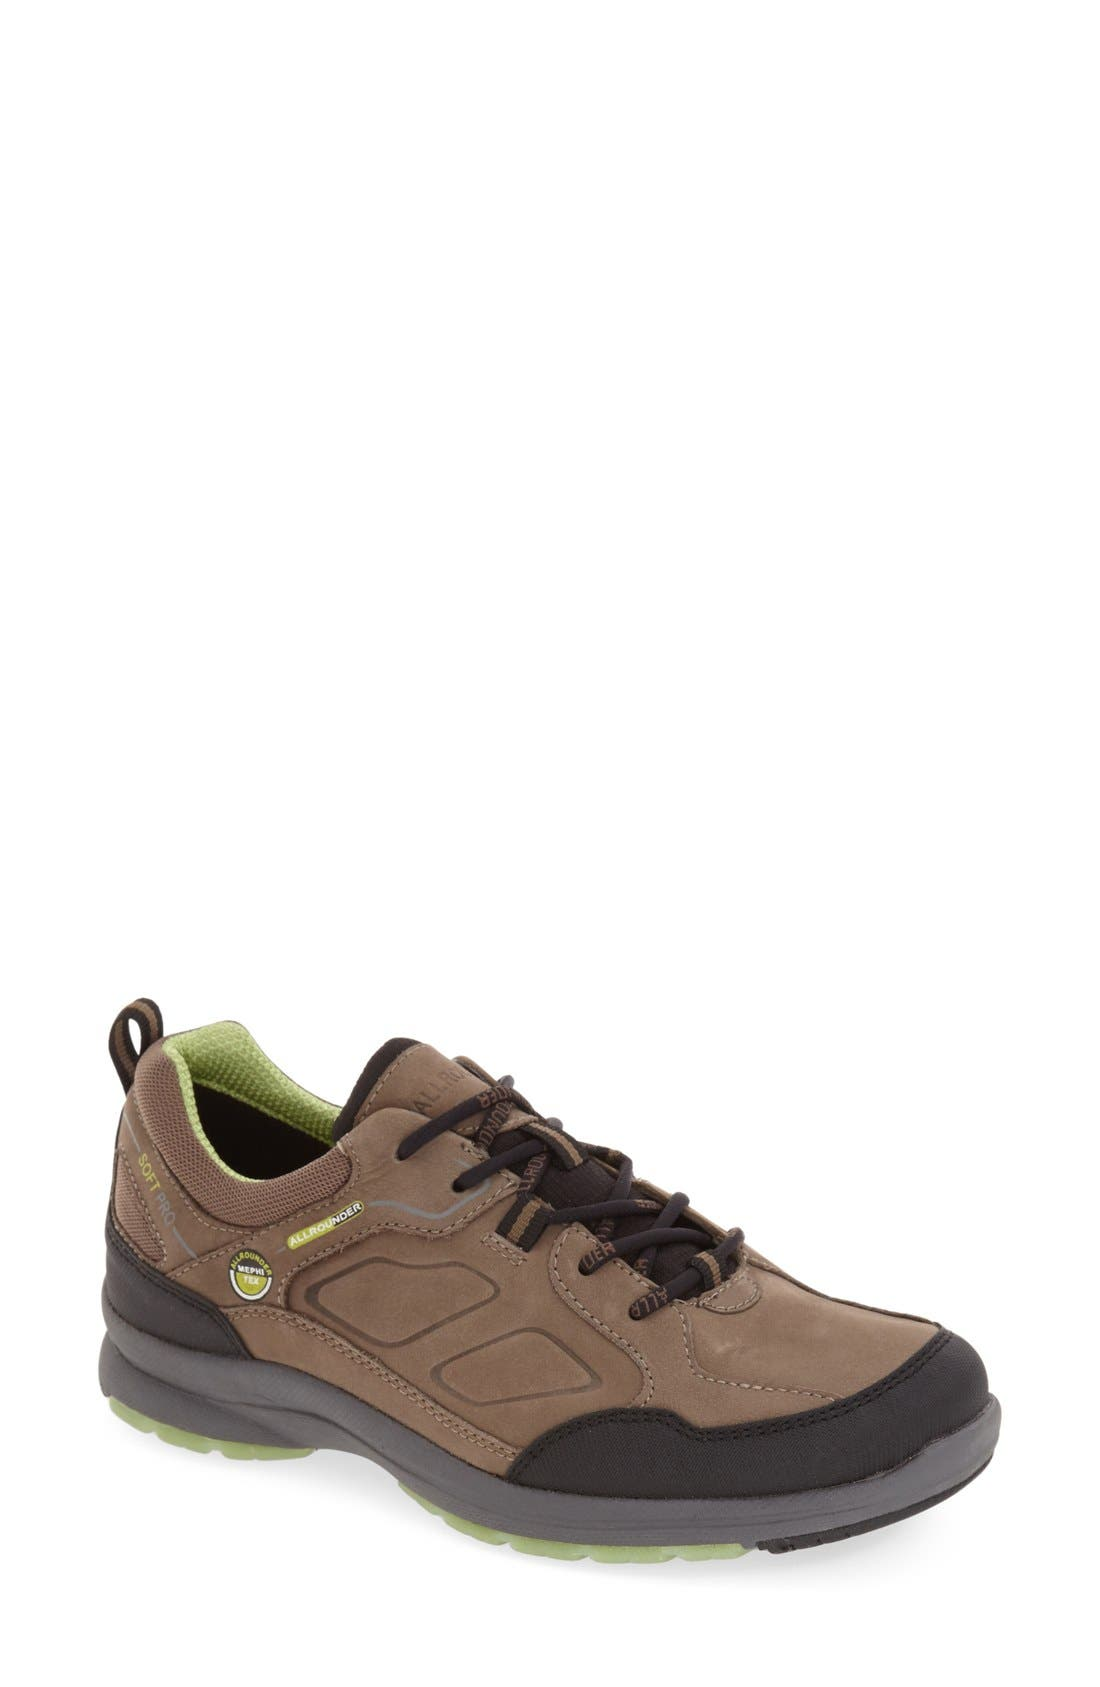 ALLROUNDER BY MEPHISTO, 'Dascha Tex' Waterproof Sneaker, Main thumbnail 1, color, 057